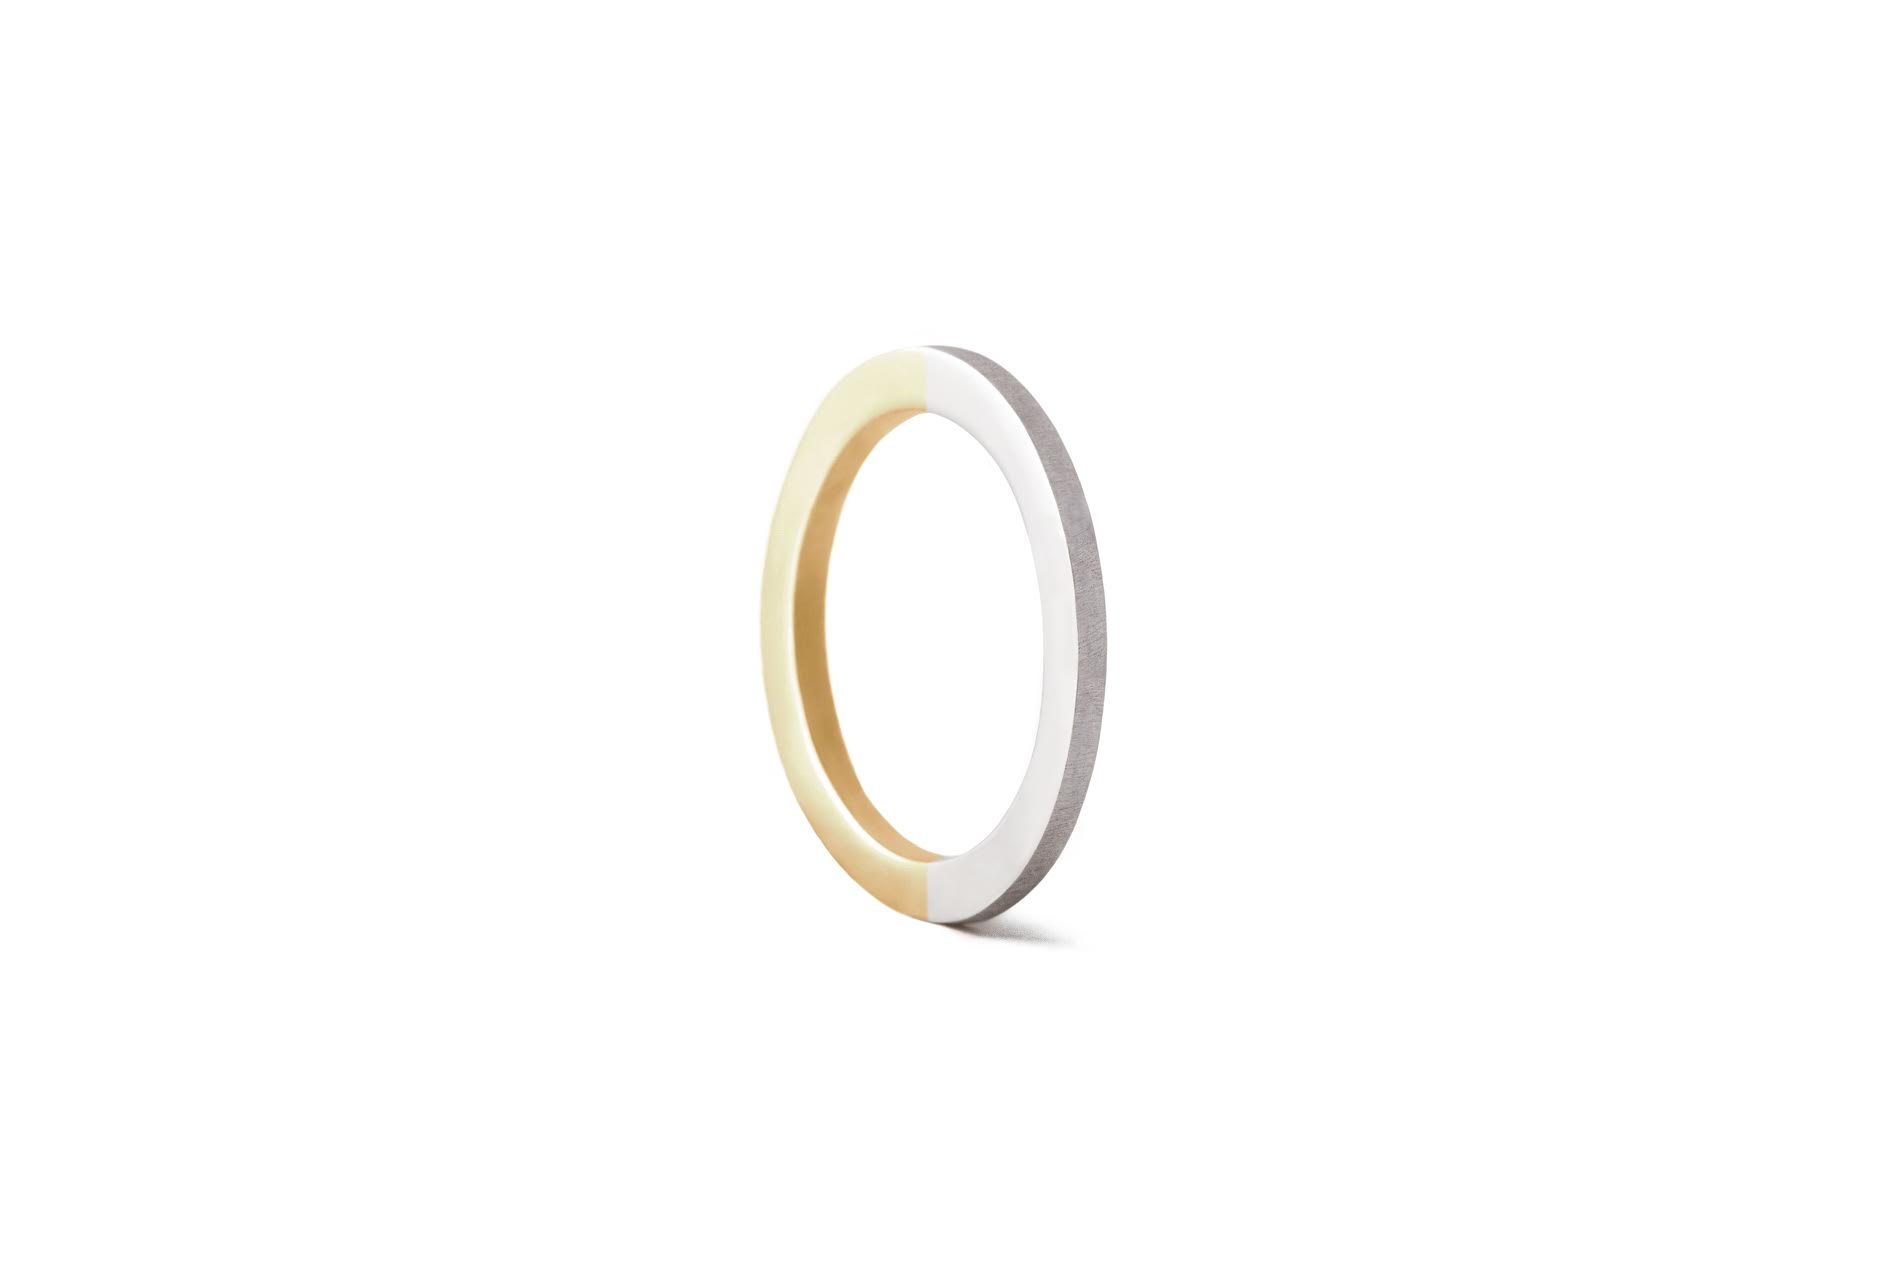 CREST WY RING 18K WHITE GOLD & 18K YELLOW GOLD